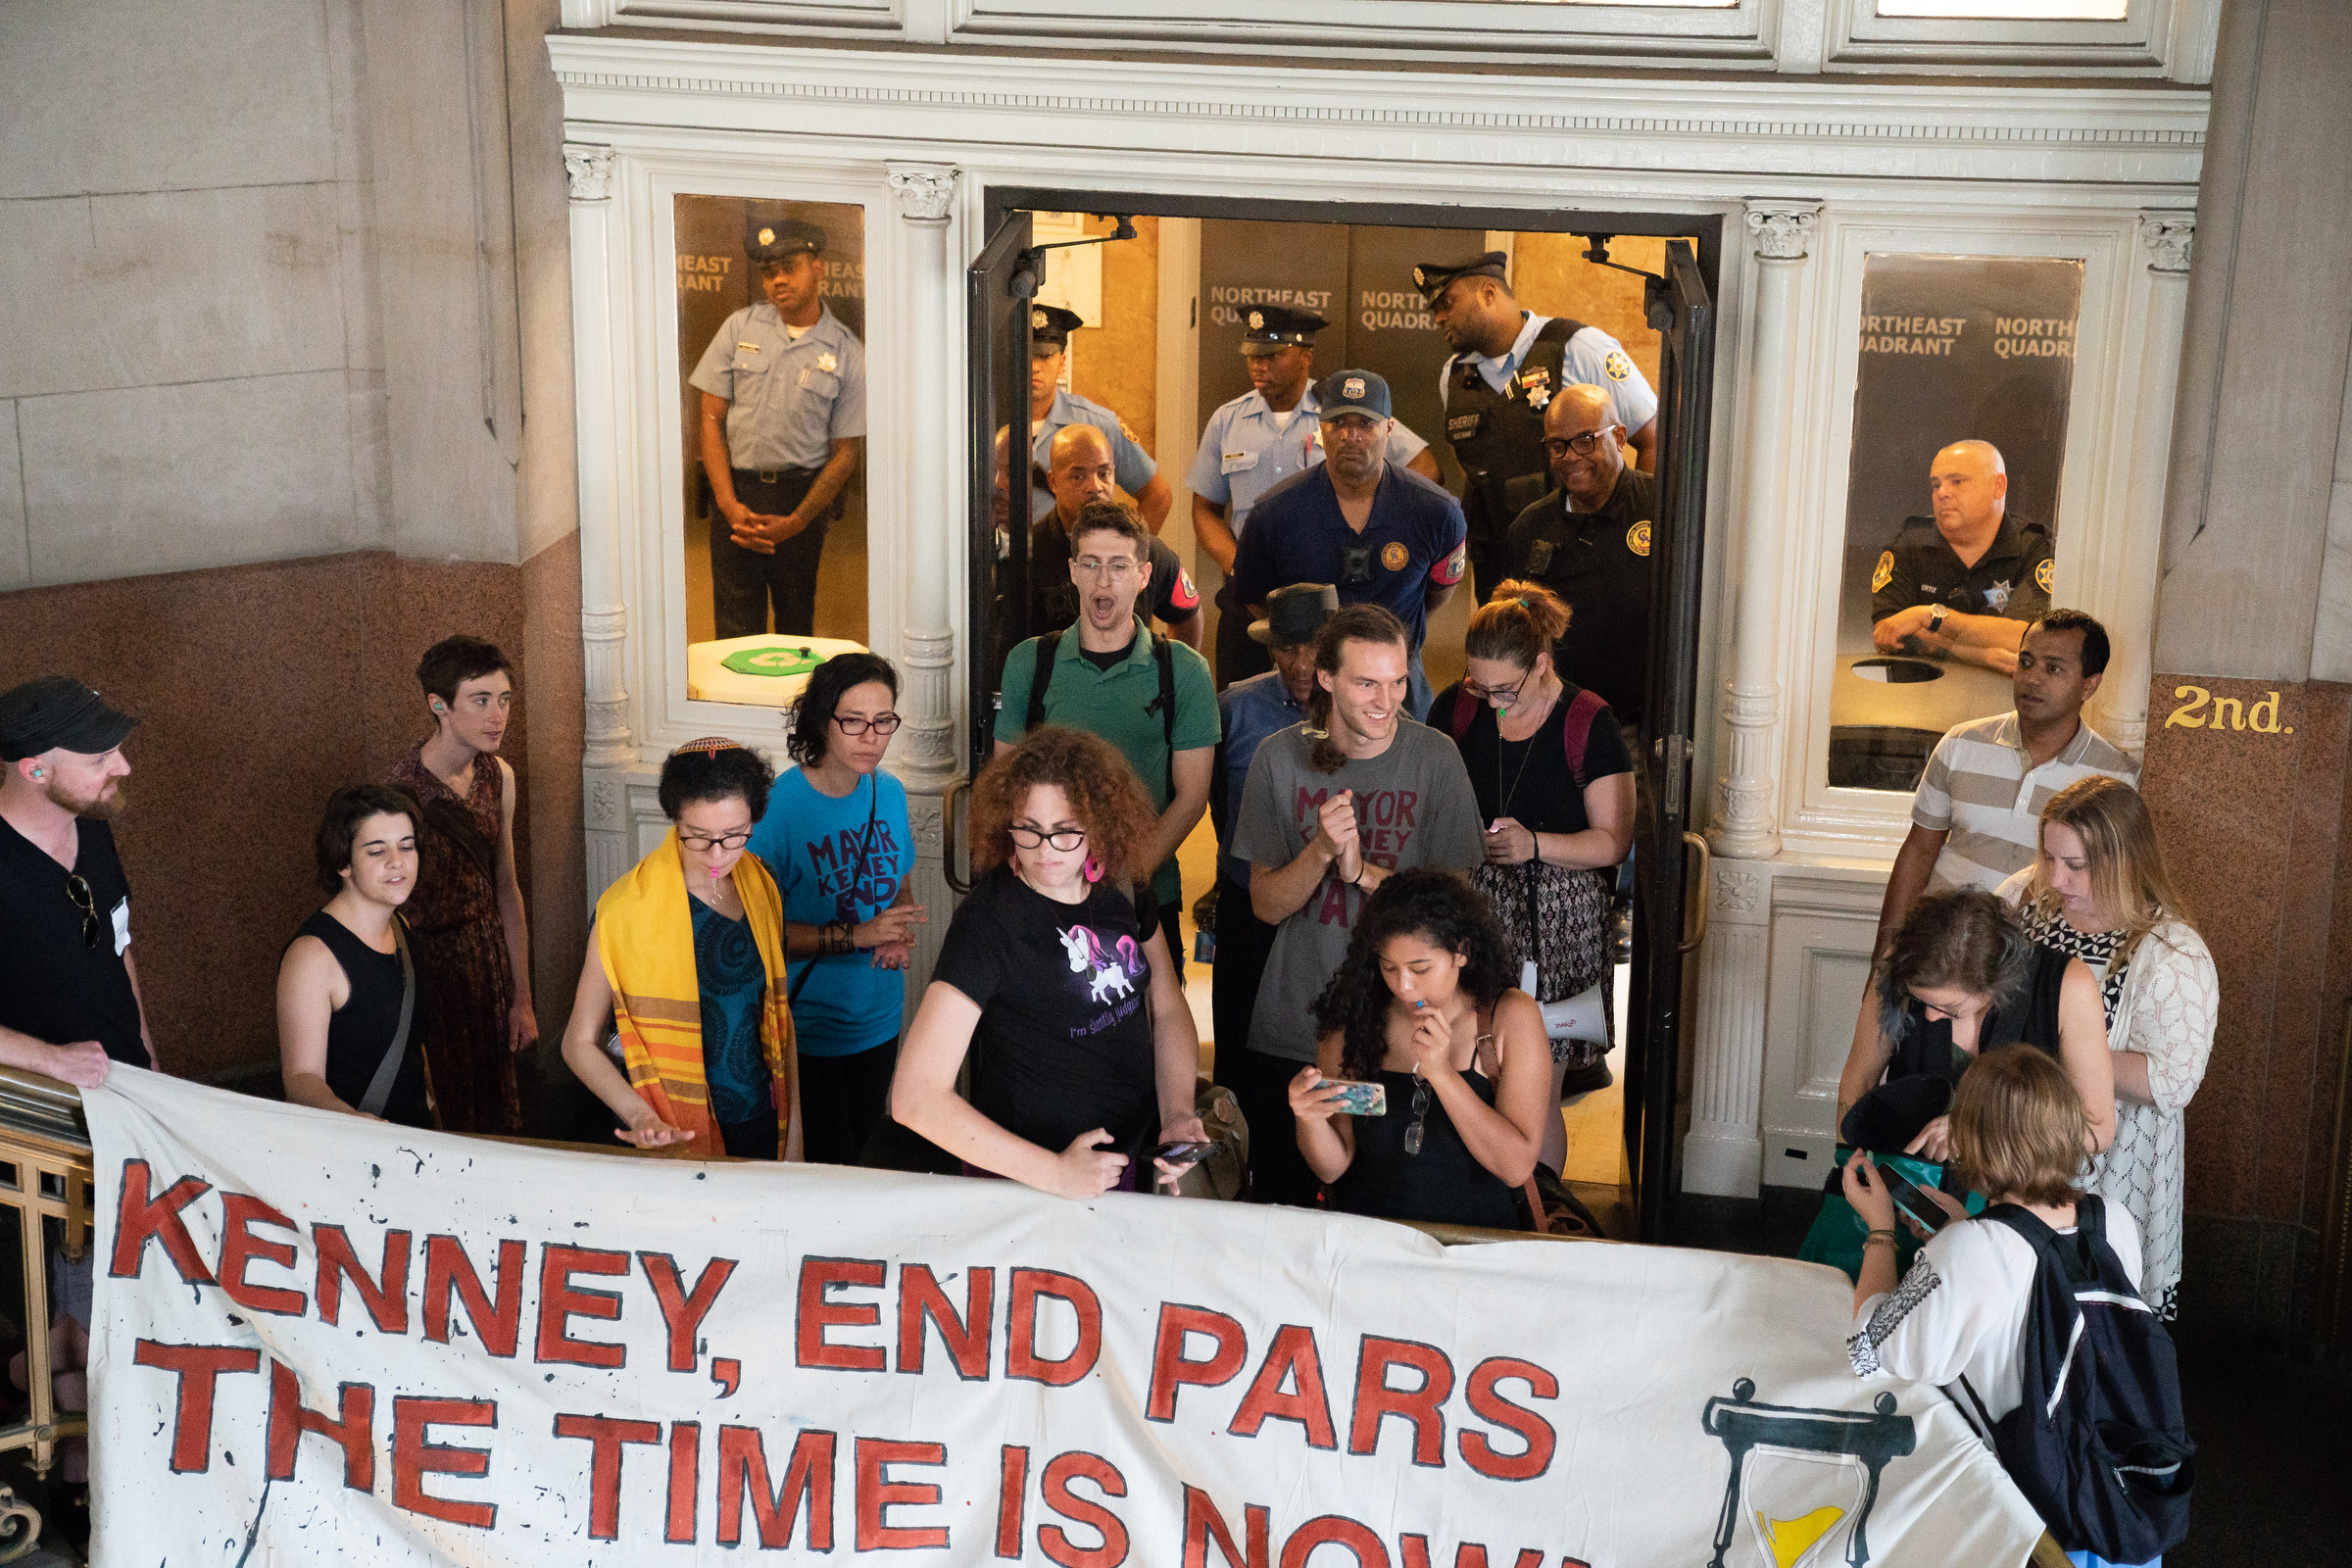 ICE Protestors block a door leading to the second floor of City Hall, in Philadelphia, on Wednesday.